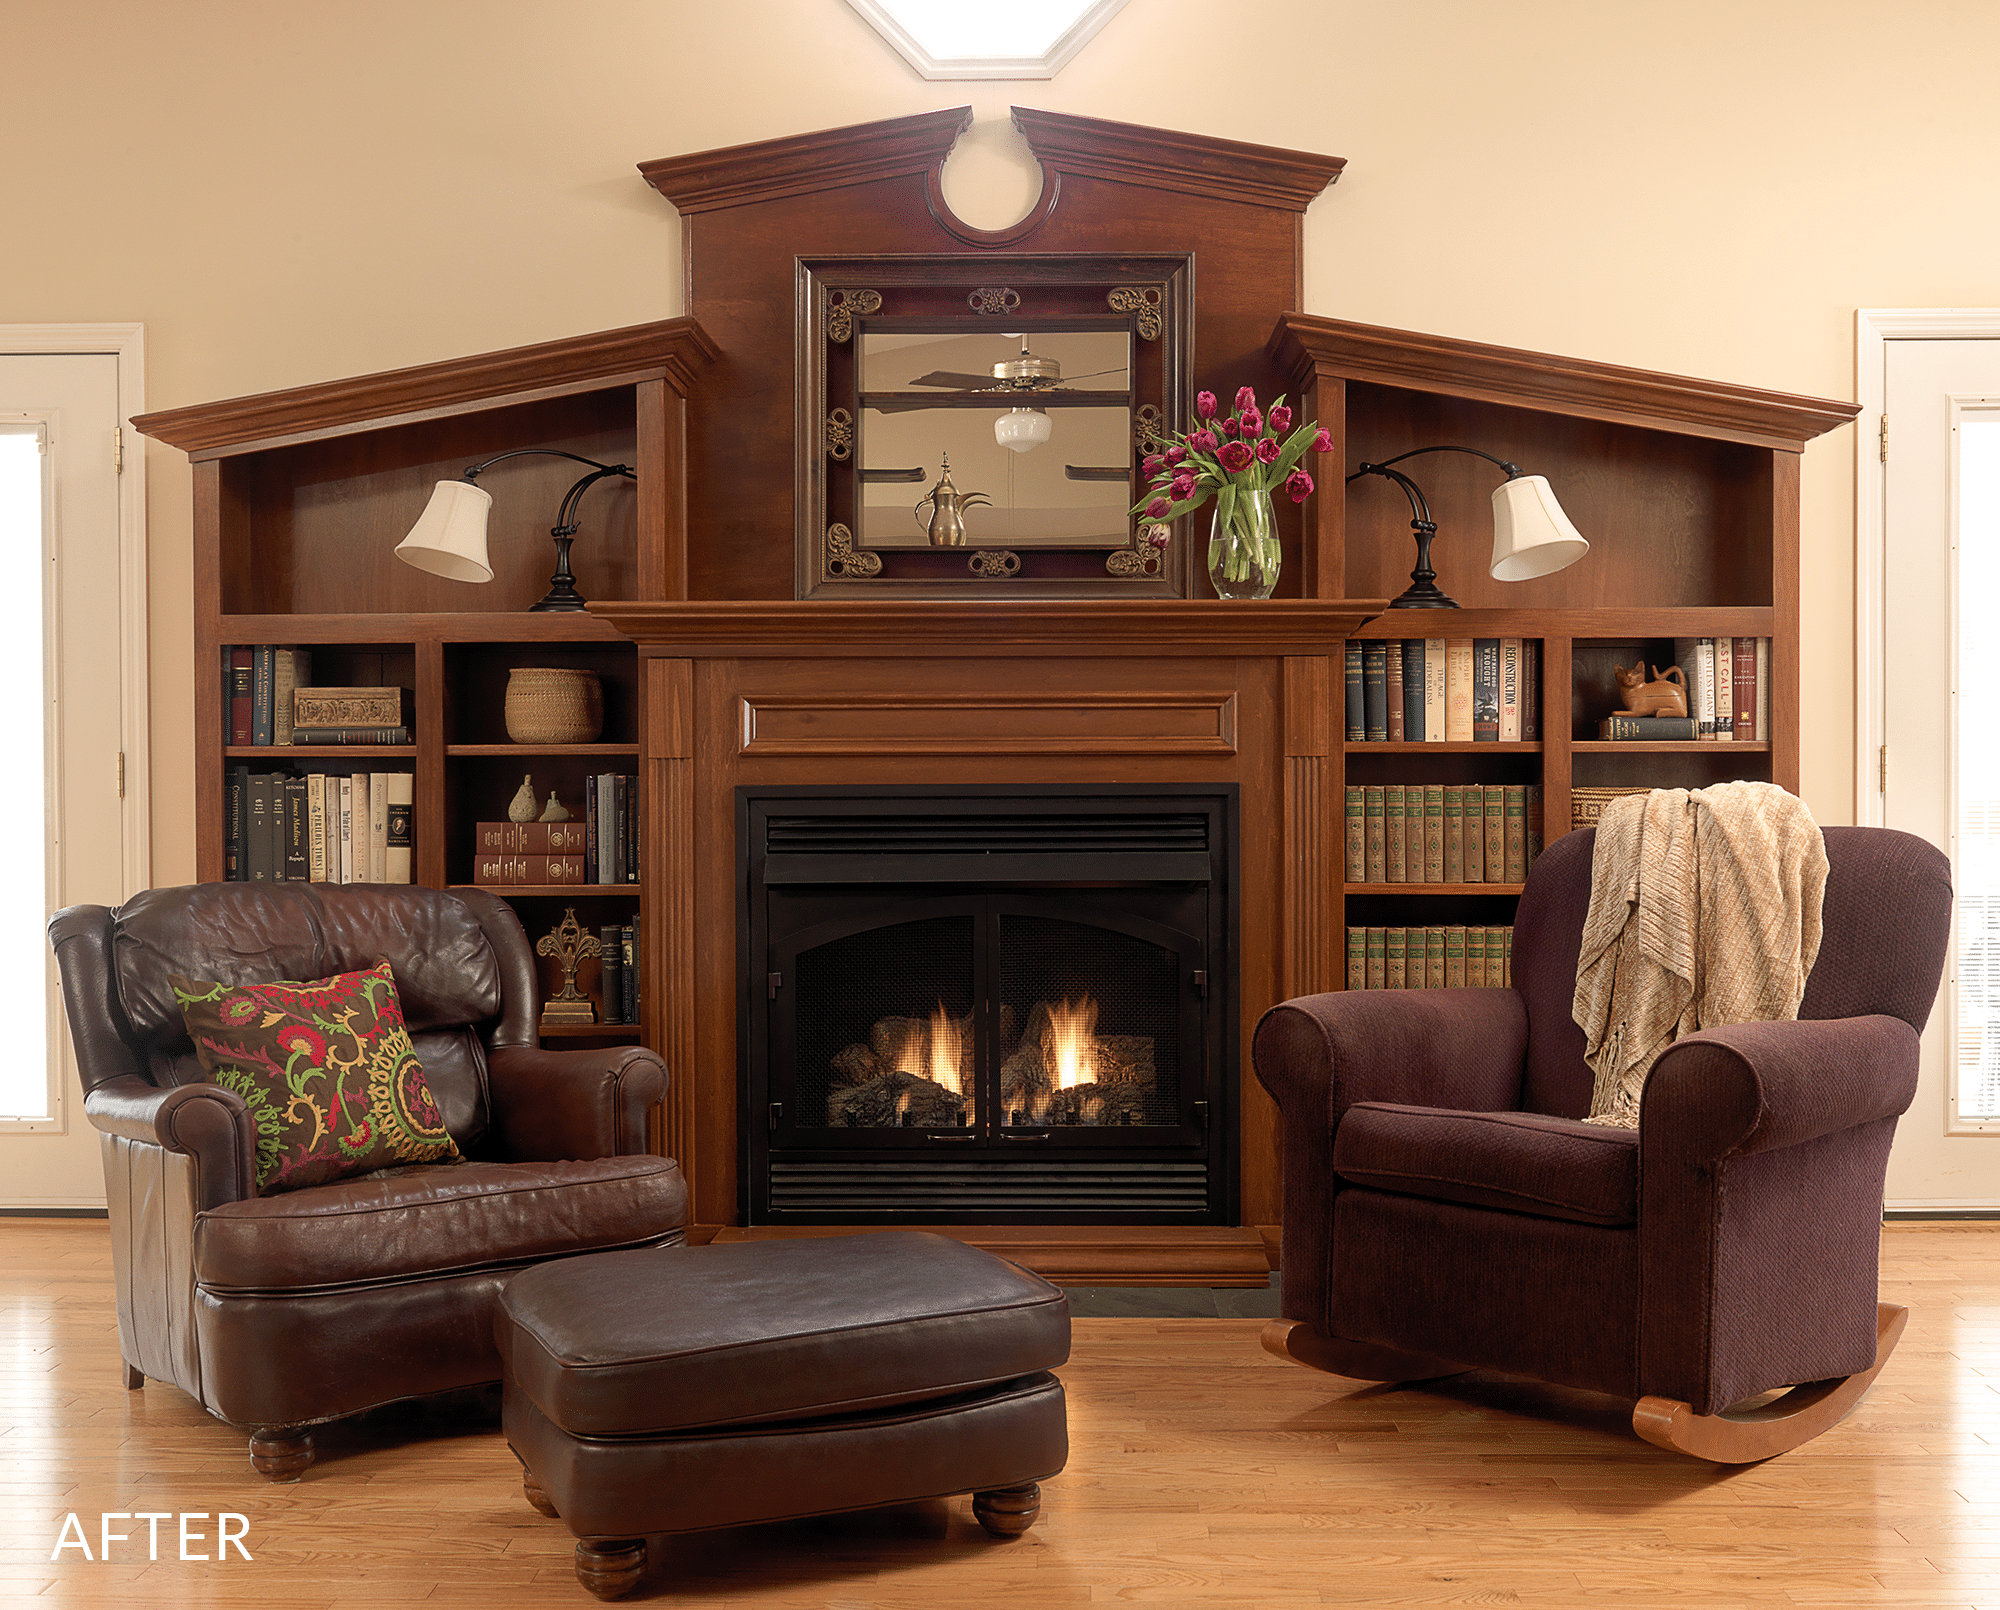 custom fireplace with bookcases built around it